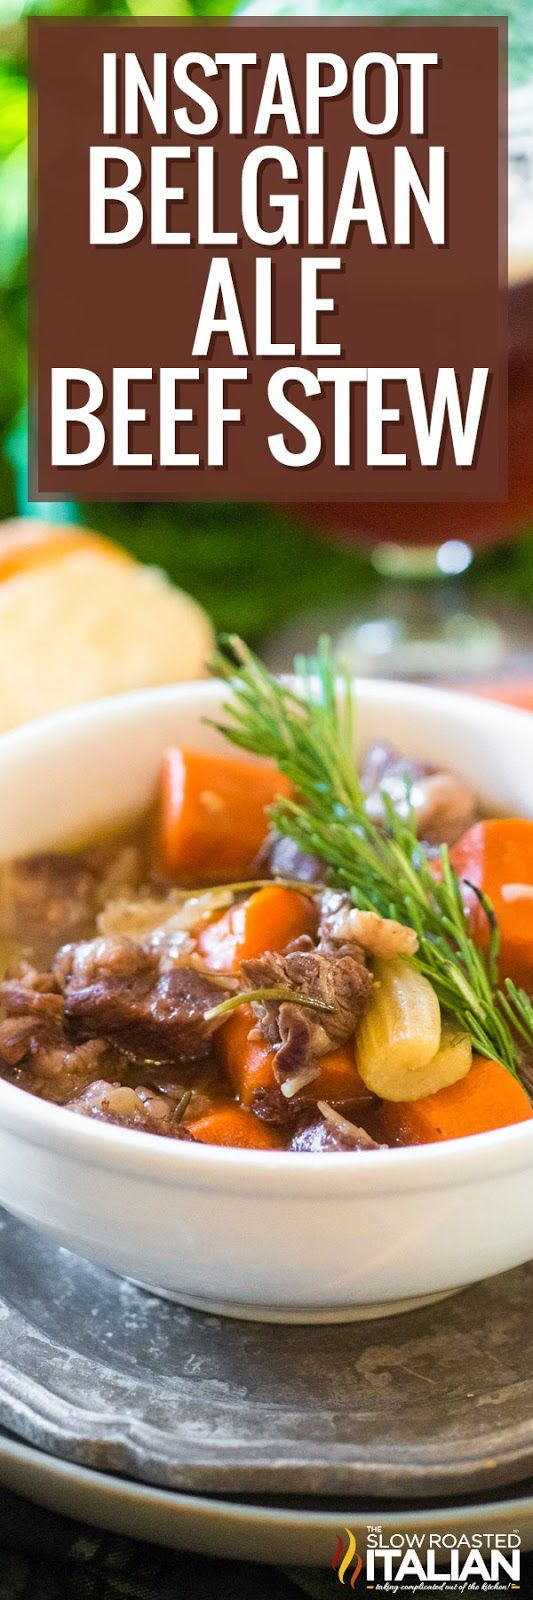 Instant Pot Belgian Ale Beef Stew | This yields meltingly tender beef in a rich, flavorful broth loaded with tasty vegetable and herbs.  It's ready in less than an hour!  Try this easy recipe tonight--perfect for the novice pressure cooker user!  #instantpotbeefstew #instantpotforbeginners